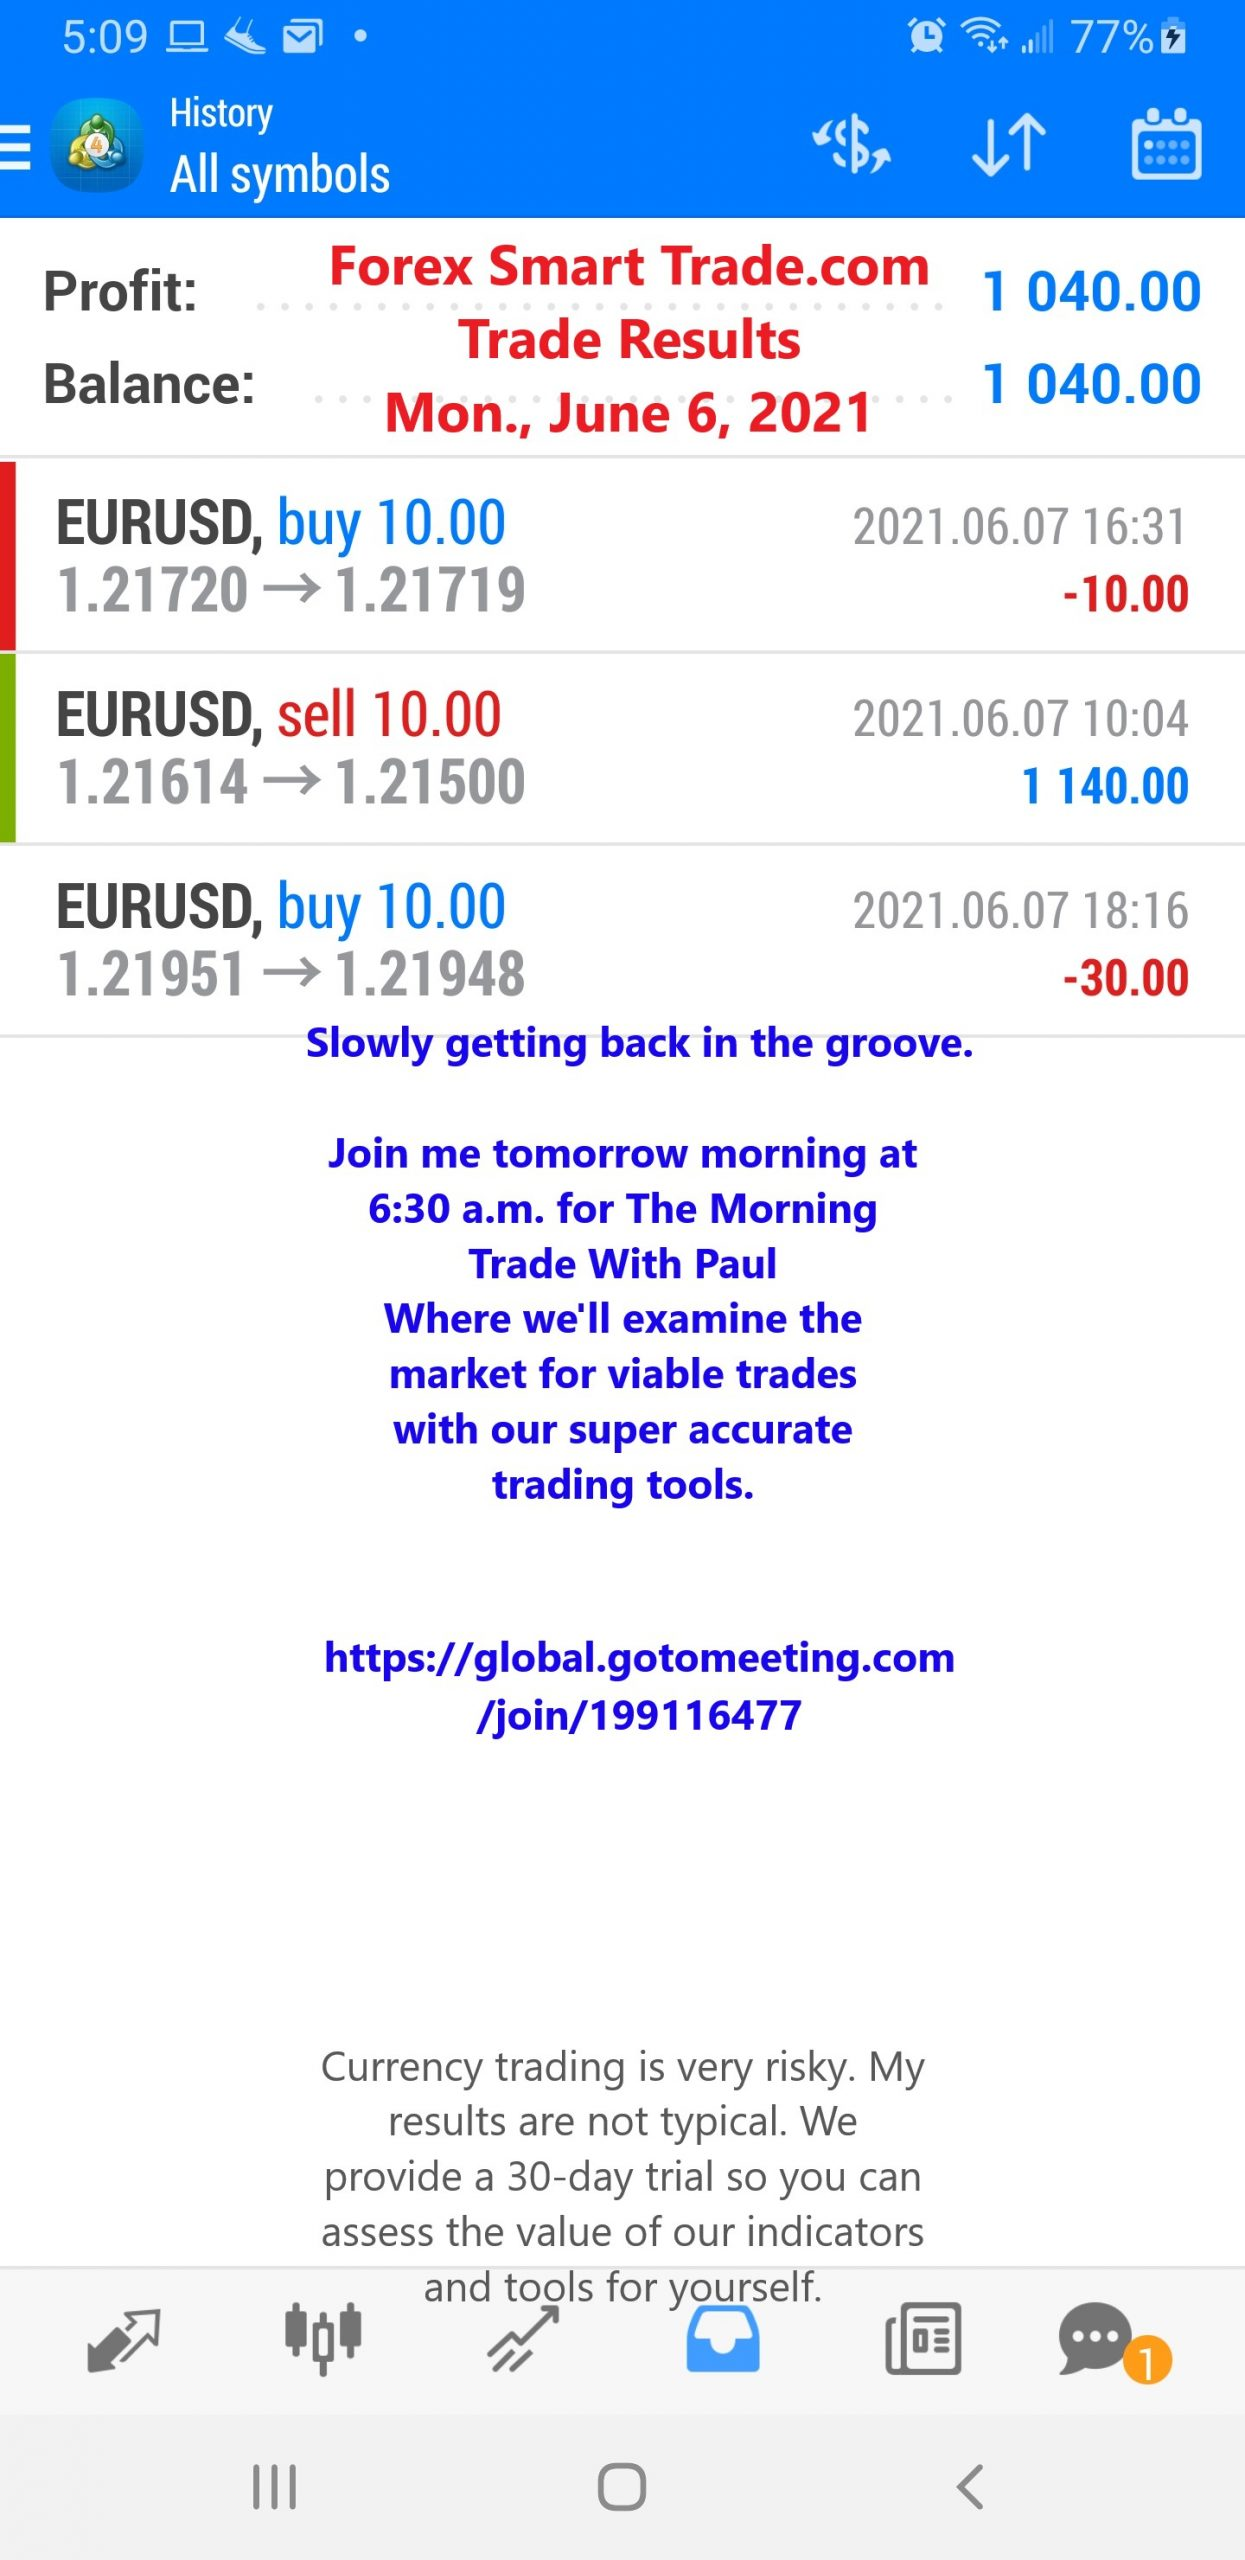 Trade Results Monday, June 6, 2021 - Forex Smart Trade